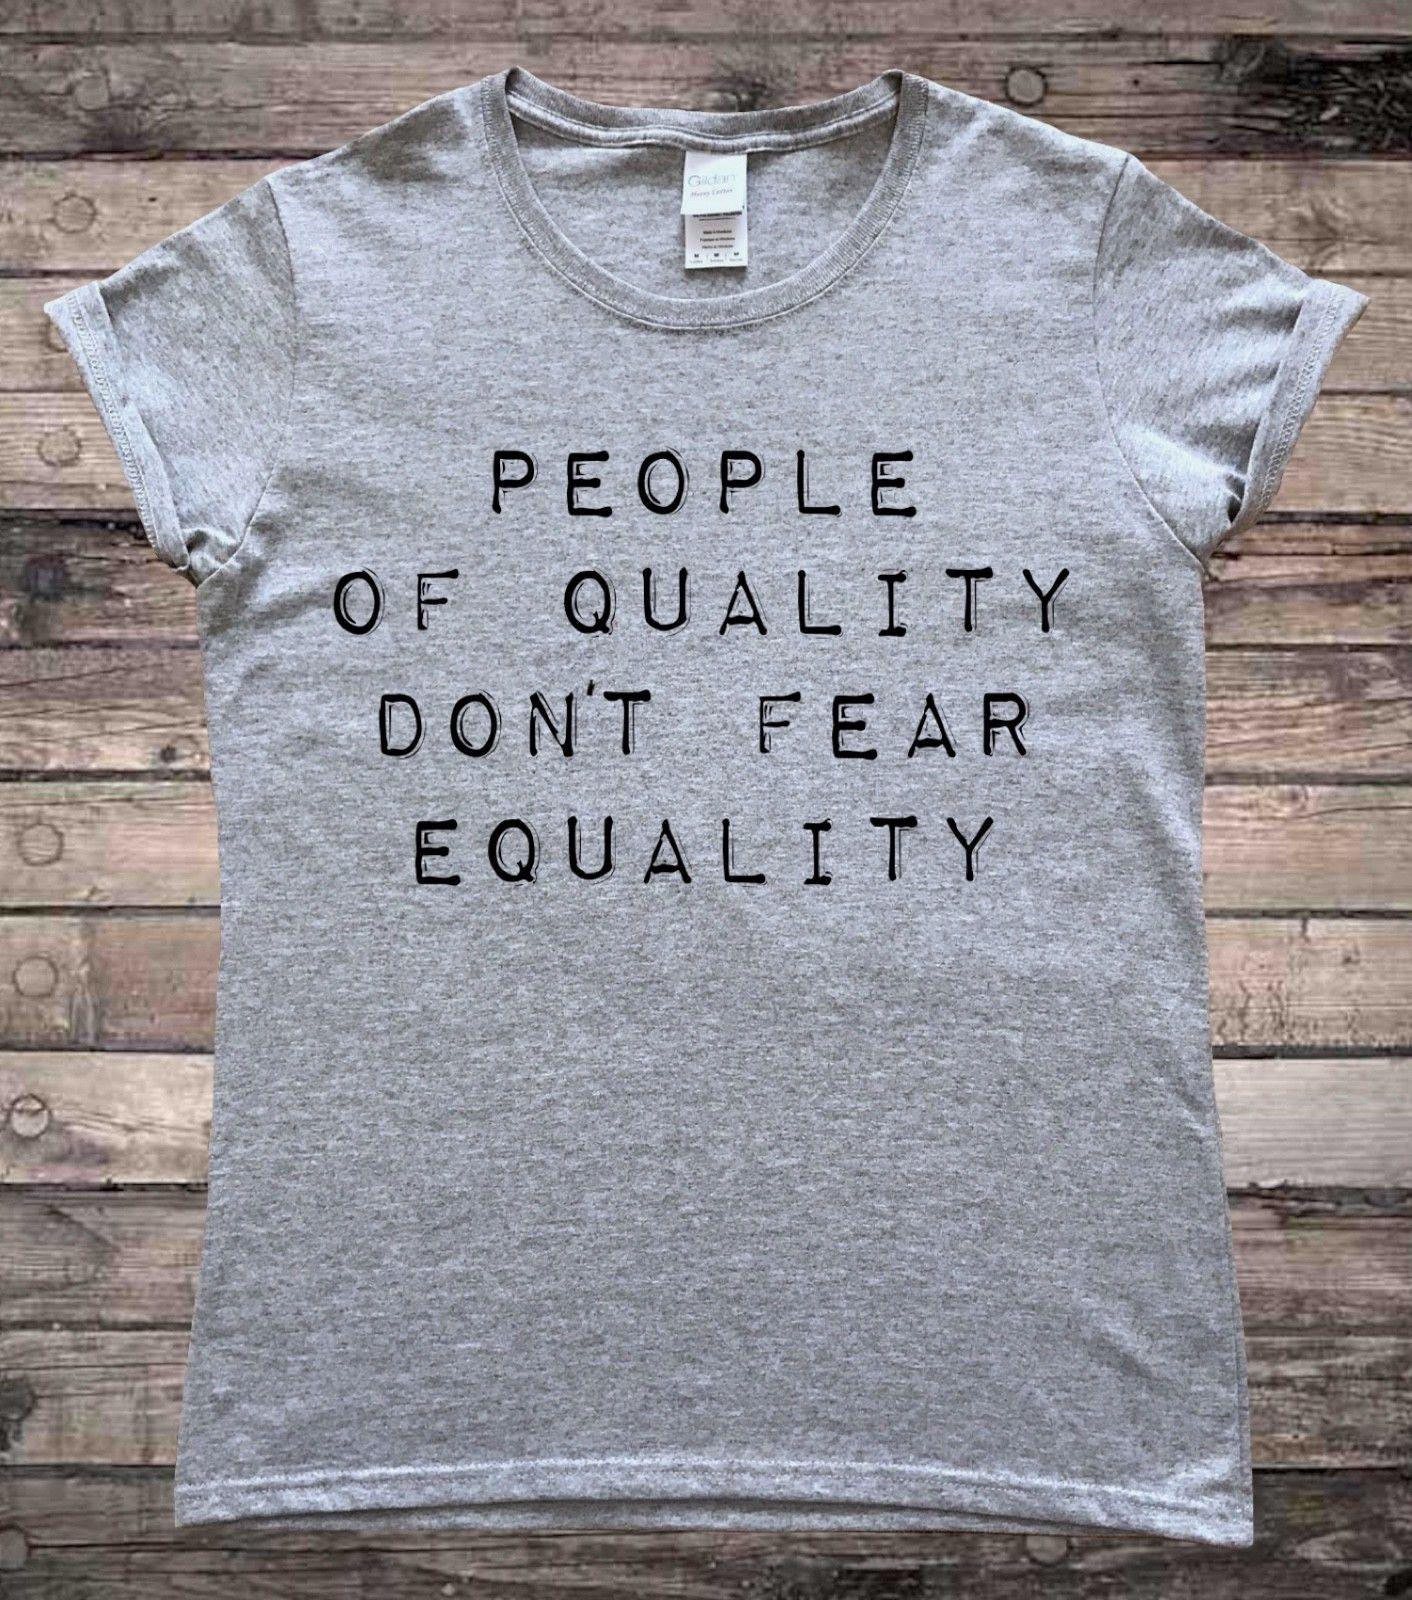 551be8f7 People Of Quality Equality Feminist Slogan Ladies T Shirt Funny Unisex  Casual T Shirt Every Day Funny Cool Shirts From Cheznobody, $12.96   DHgate.Com